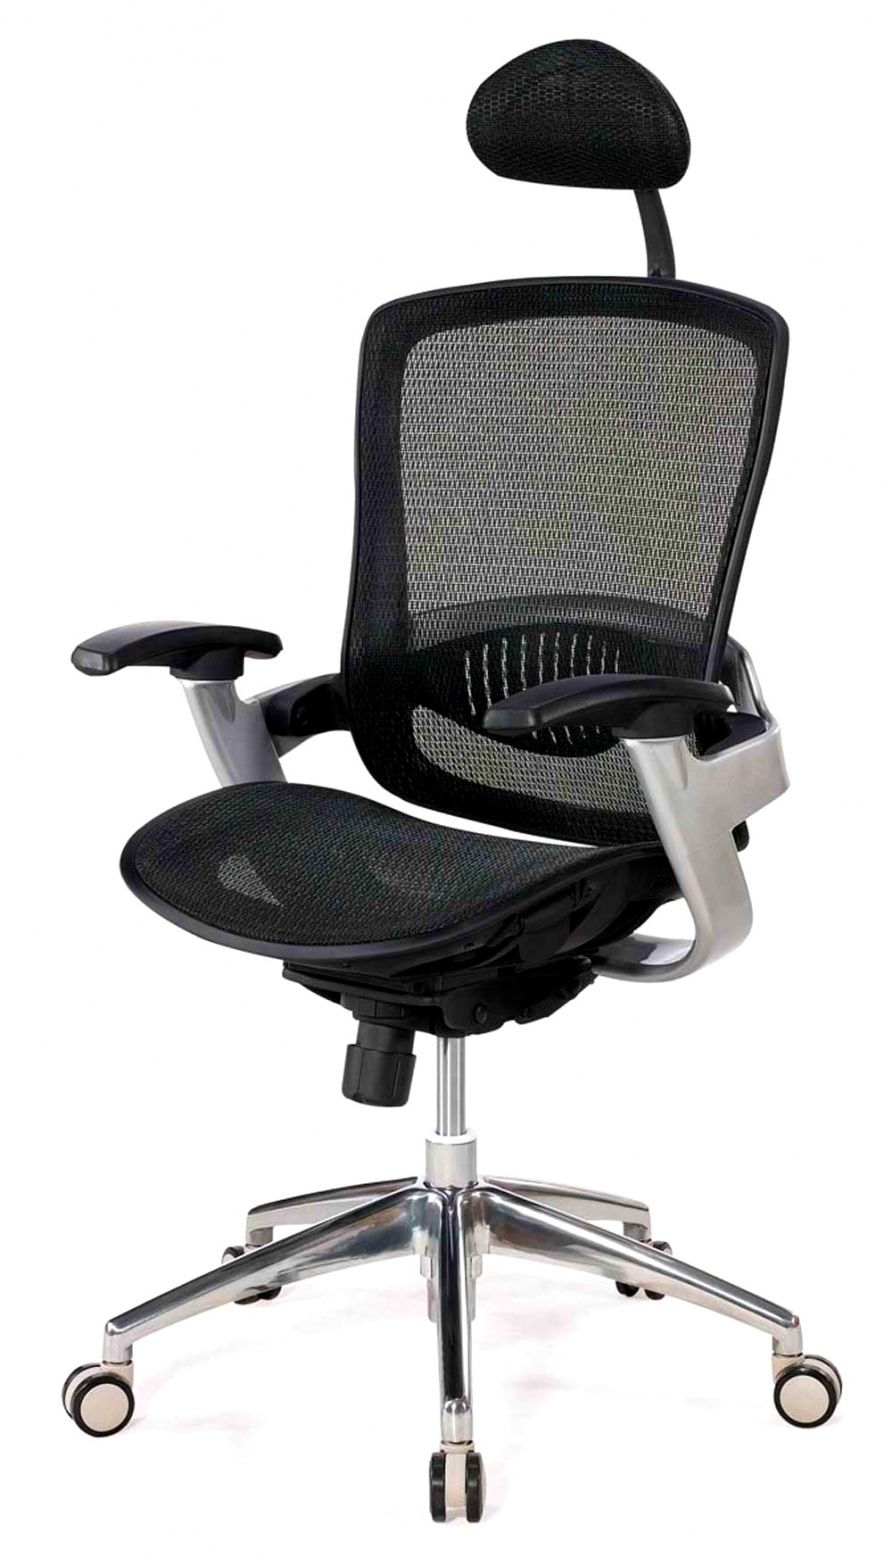 77 Office Chair With Locking Wheels Home Desk Furniture Check More At Http